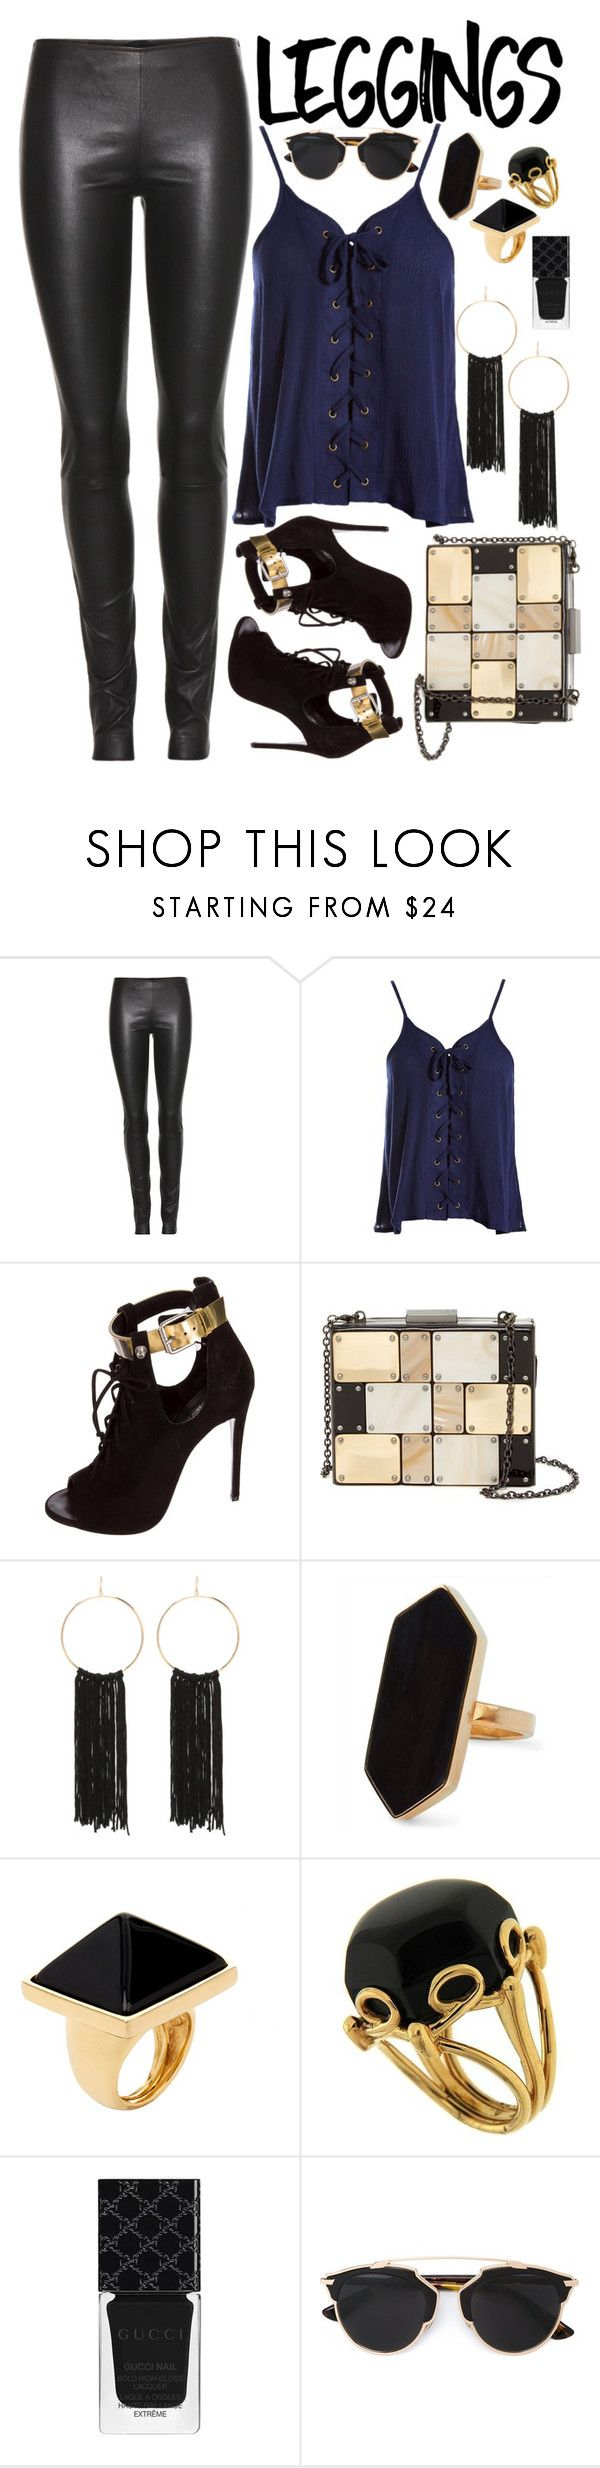 """""""Leggings👖"""" by chey-love ❤ liked on Polyvore featuring The Row, Sans Souci, Giuseppe Zanotti, Sondra Roberts, Bebe, Jaeger, Kenneth Jay Lane, Valentin Magro, Gucci and Christian Dior"""